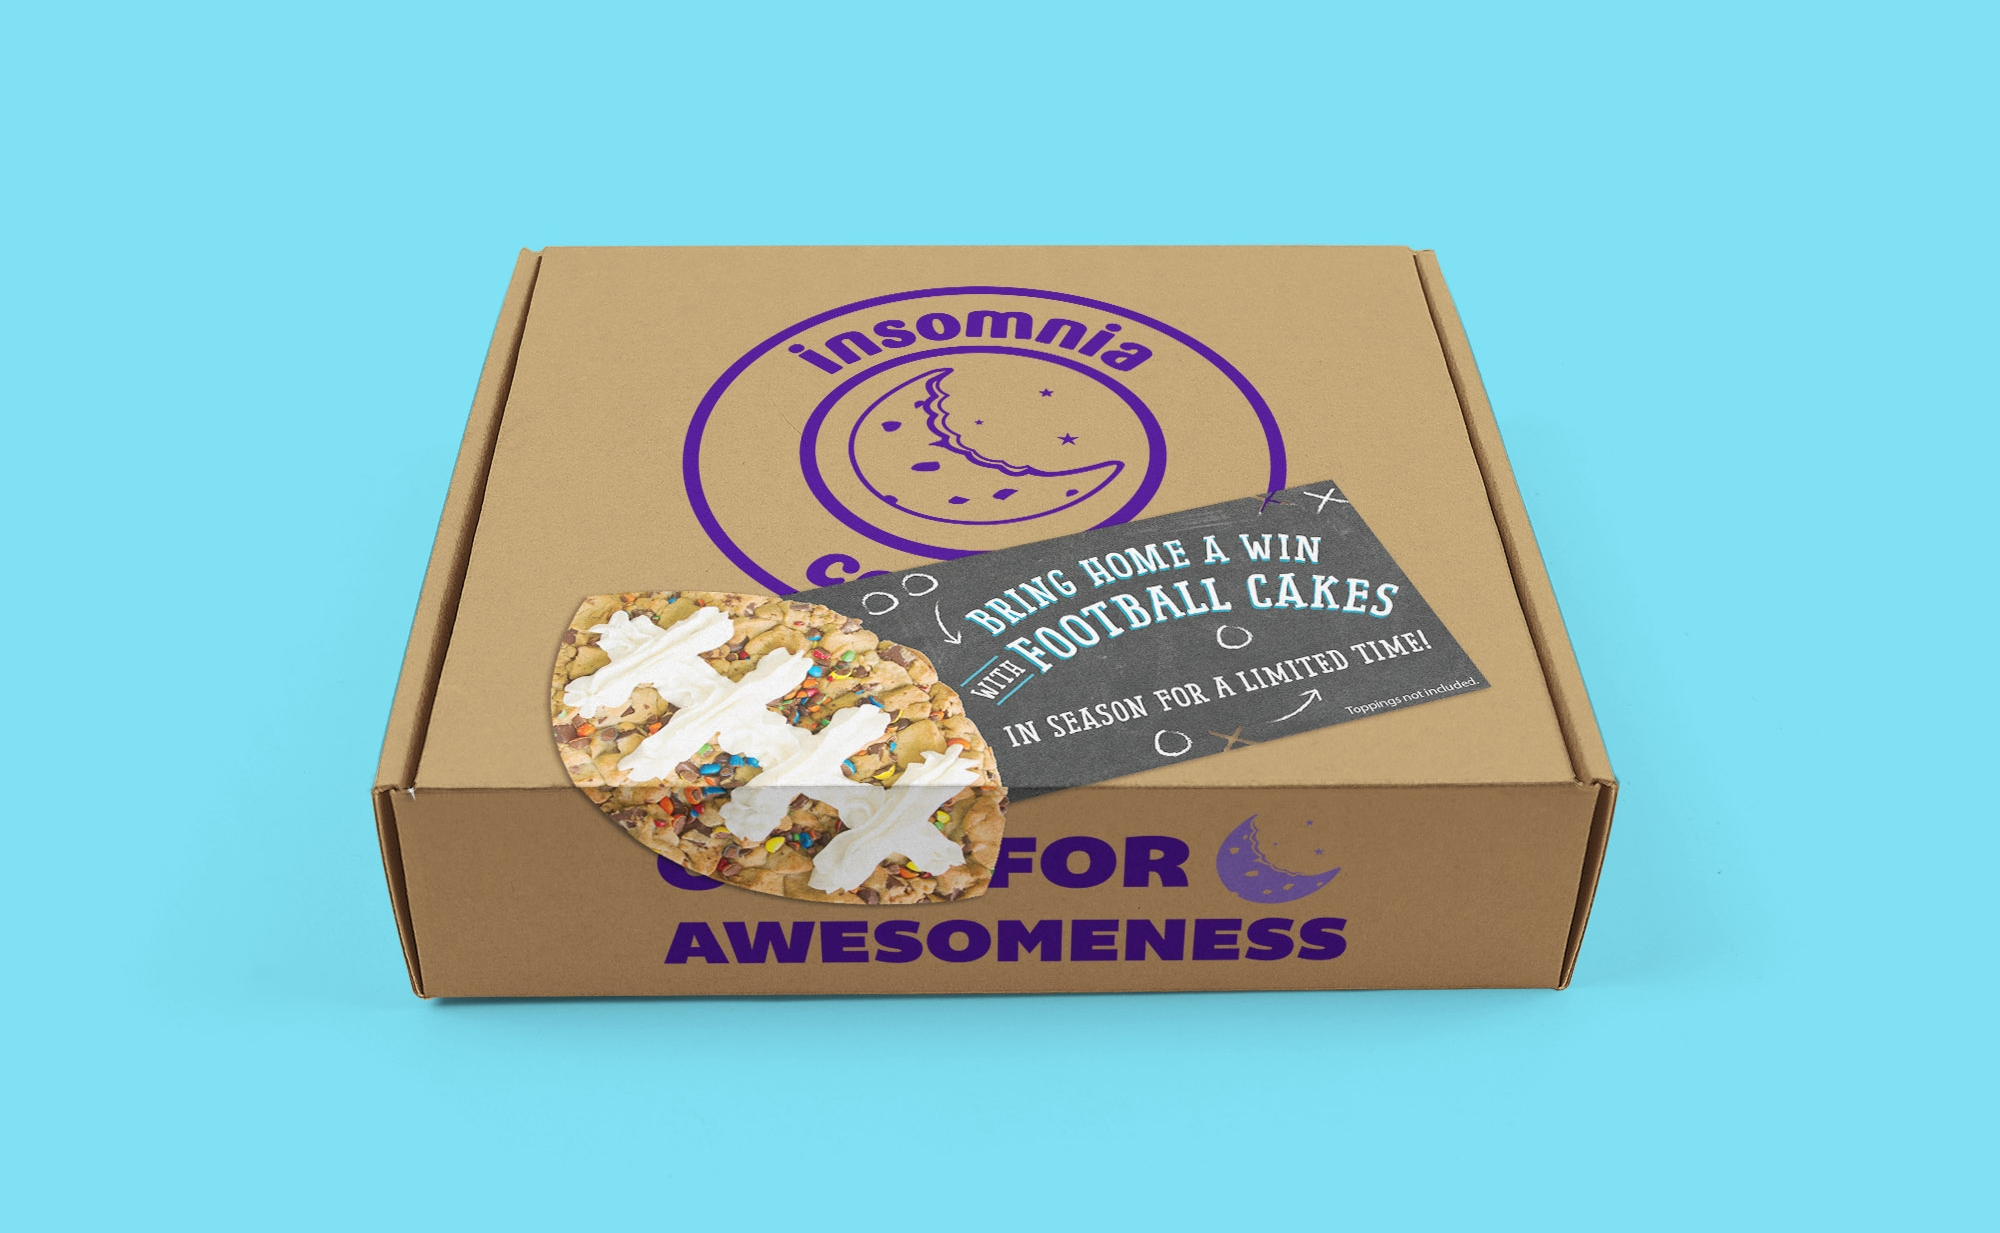 Football Cakes launch promotional box sticker